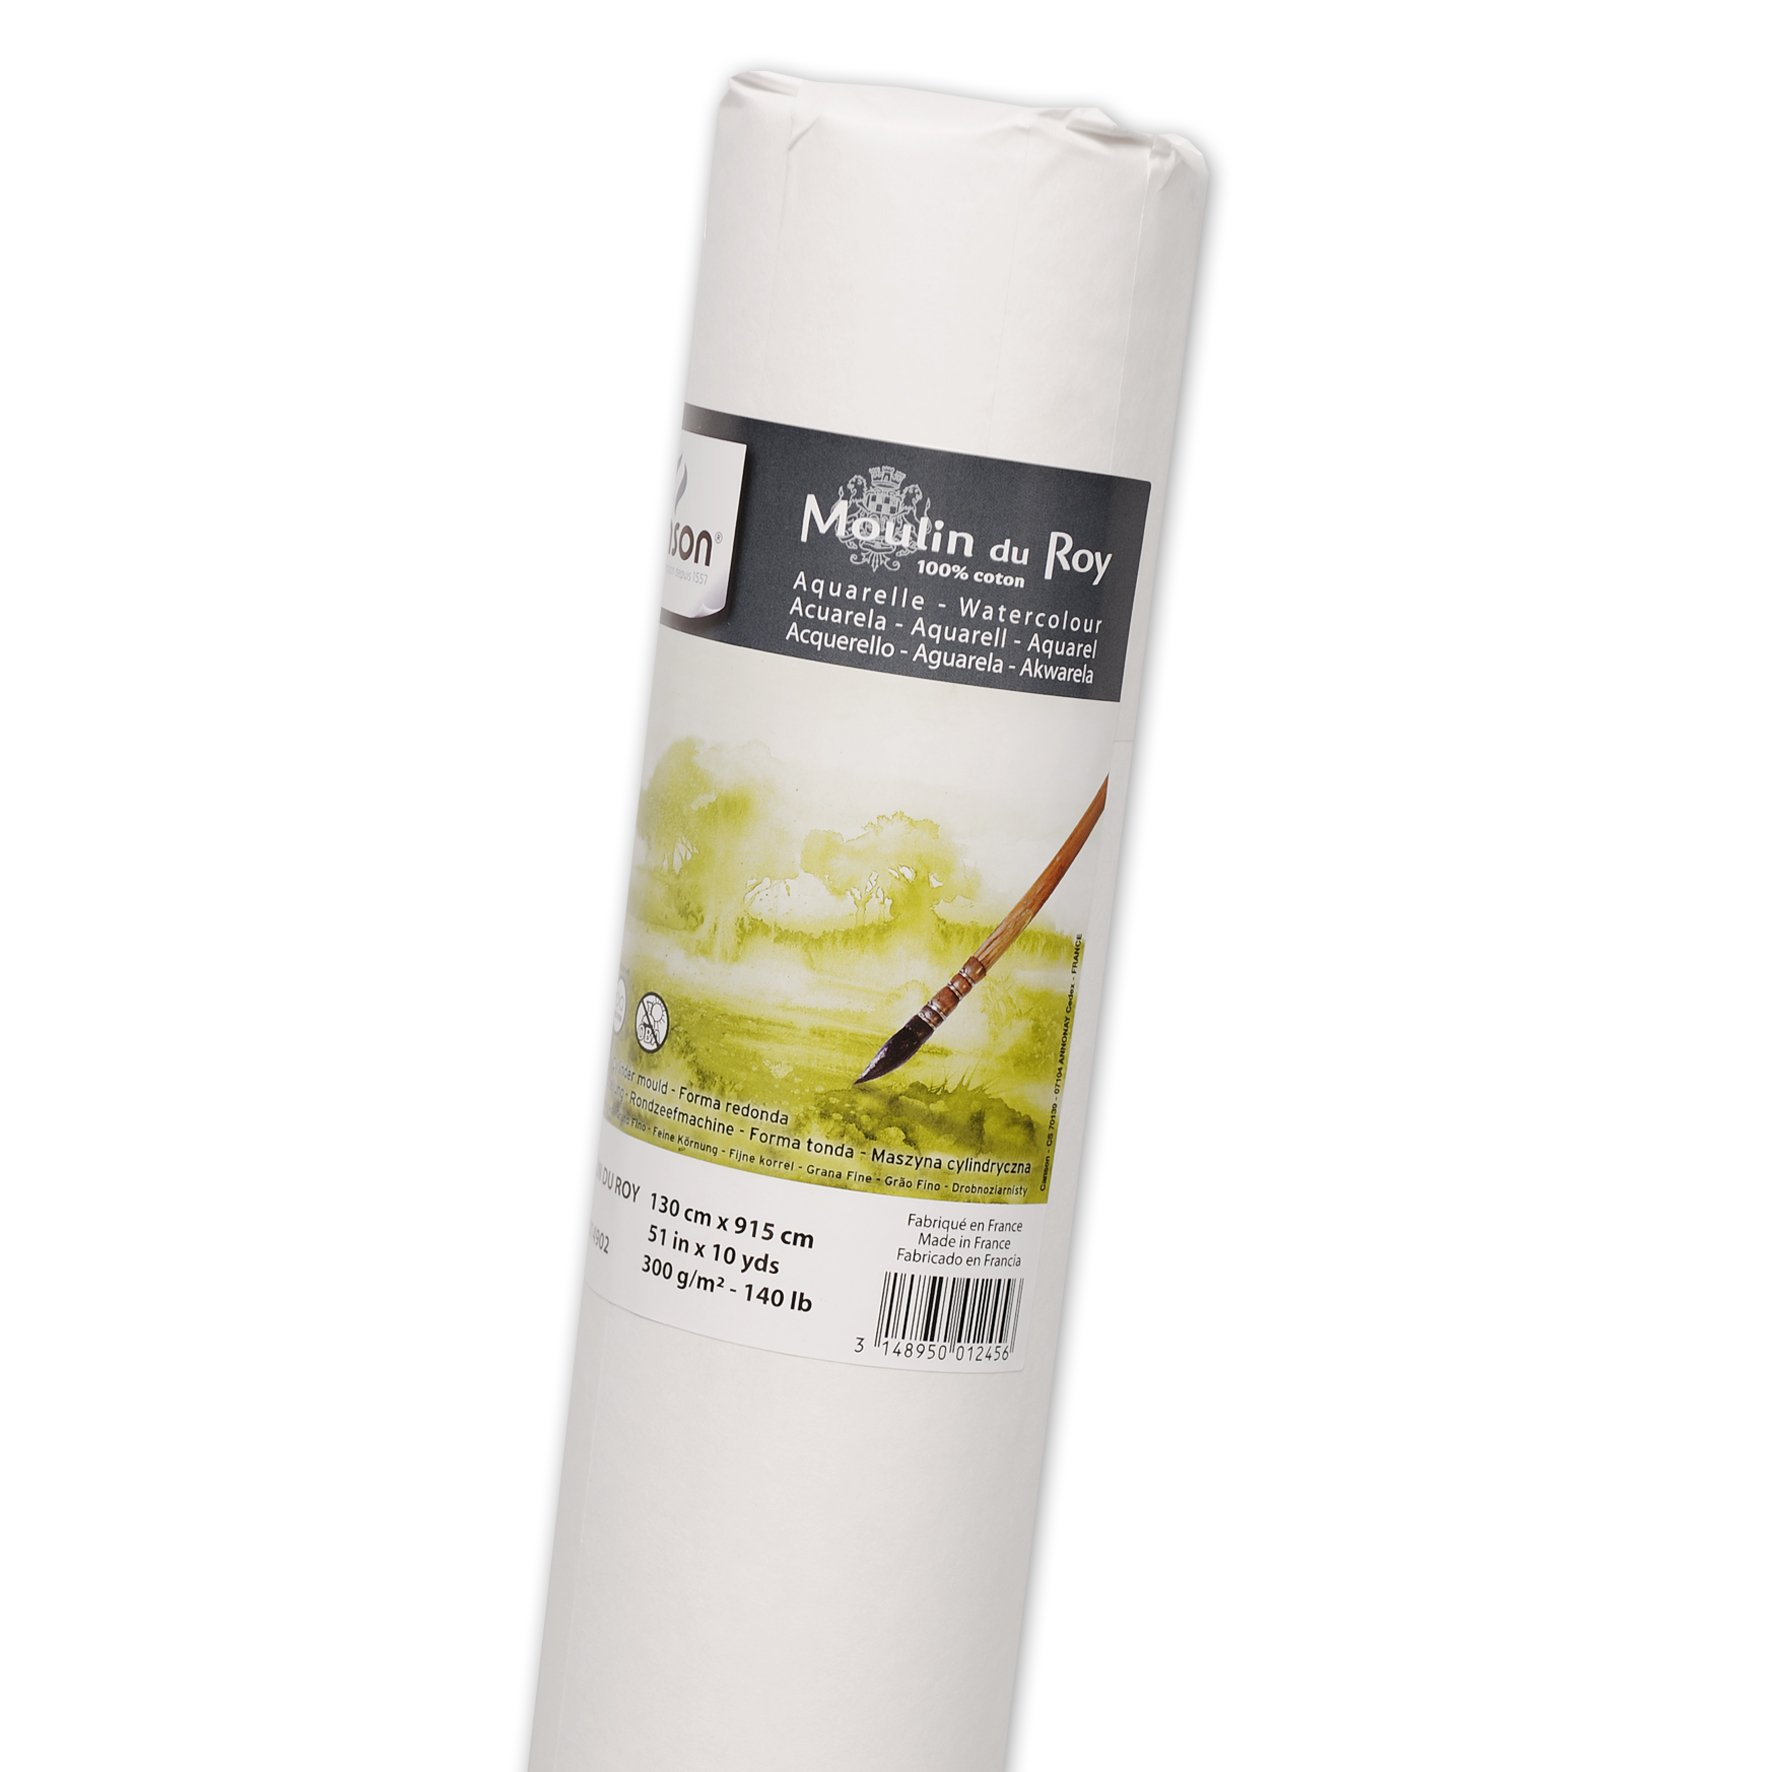 Canson Moulin Du Roy Watercolor Cold Press Paper, 140 Pound, 51 Inch x 10 Yard Roll by Canson